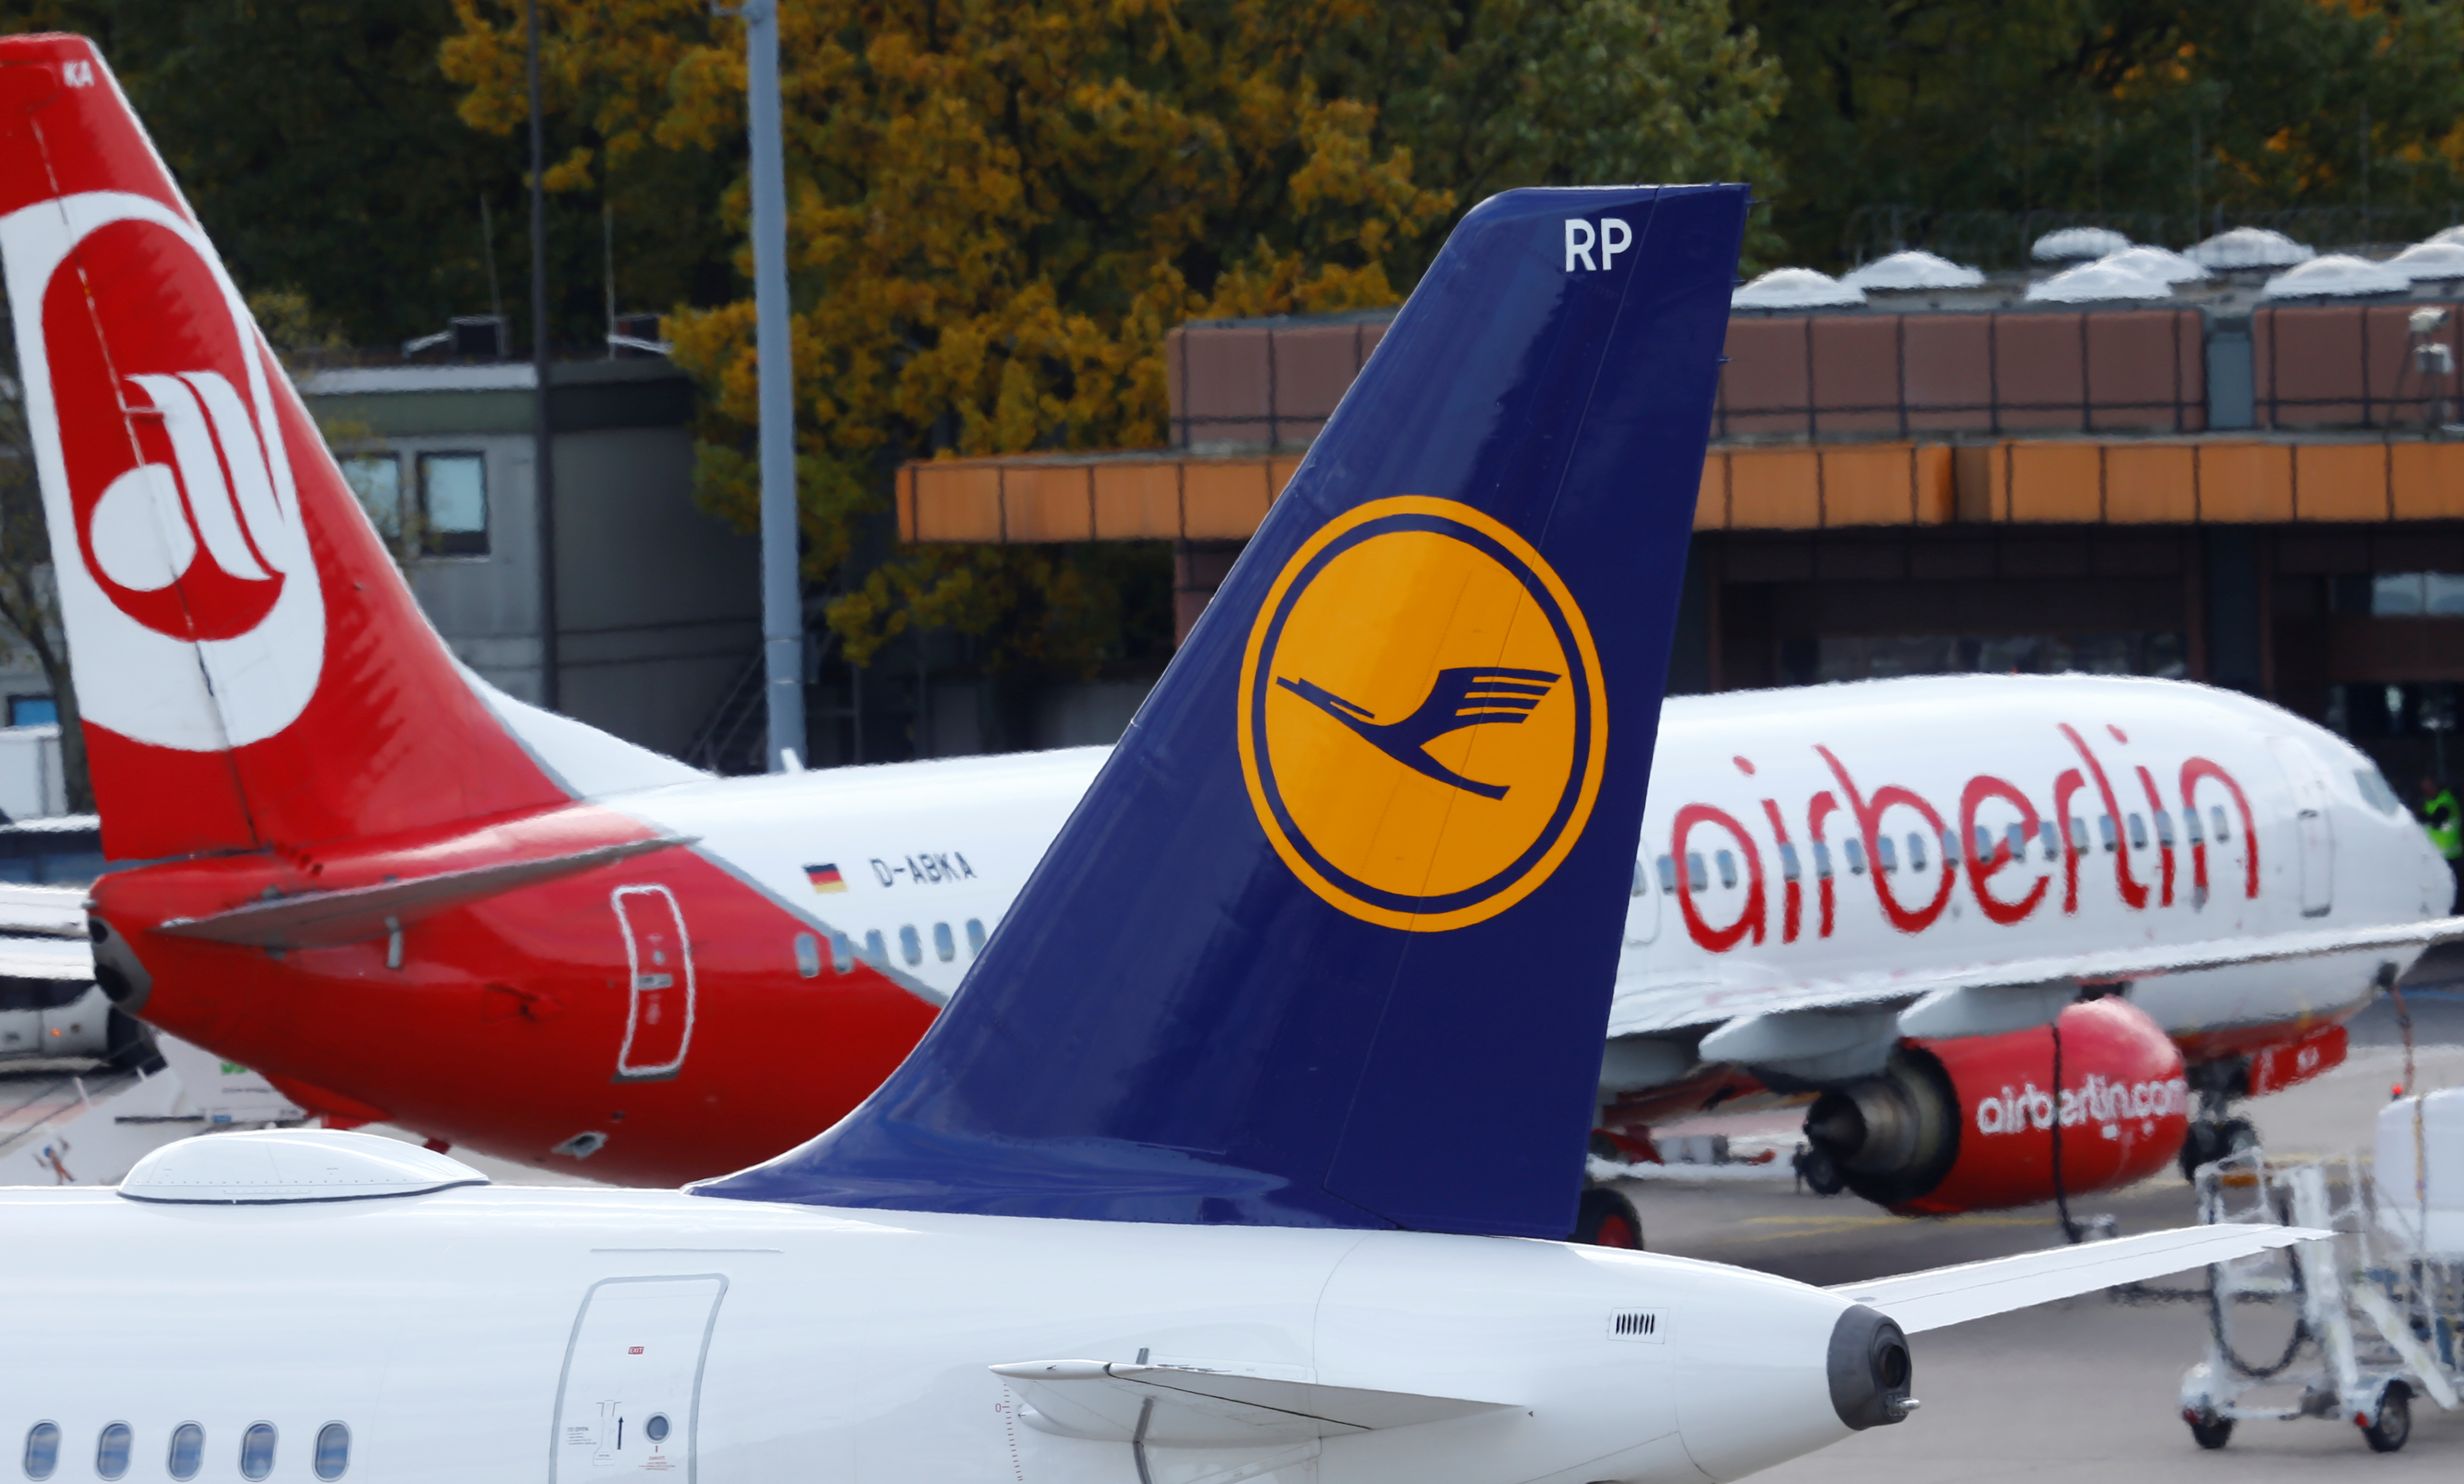 A Lufthansa airliner taxis next to the Air Berlin aircraft at Tegel airport in Berlin, Germany, October 12, 2017.